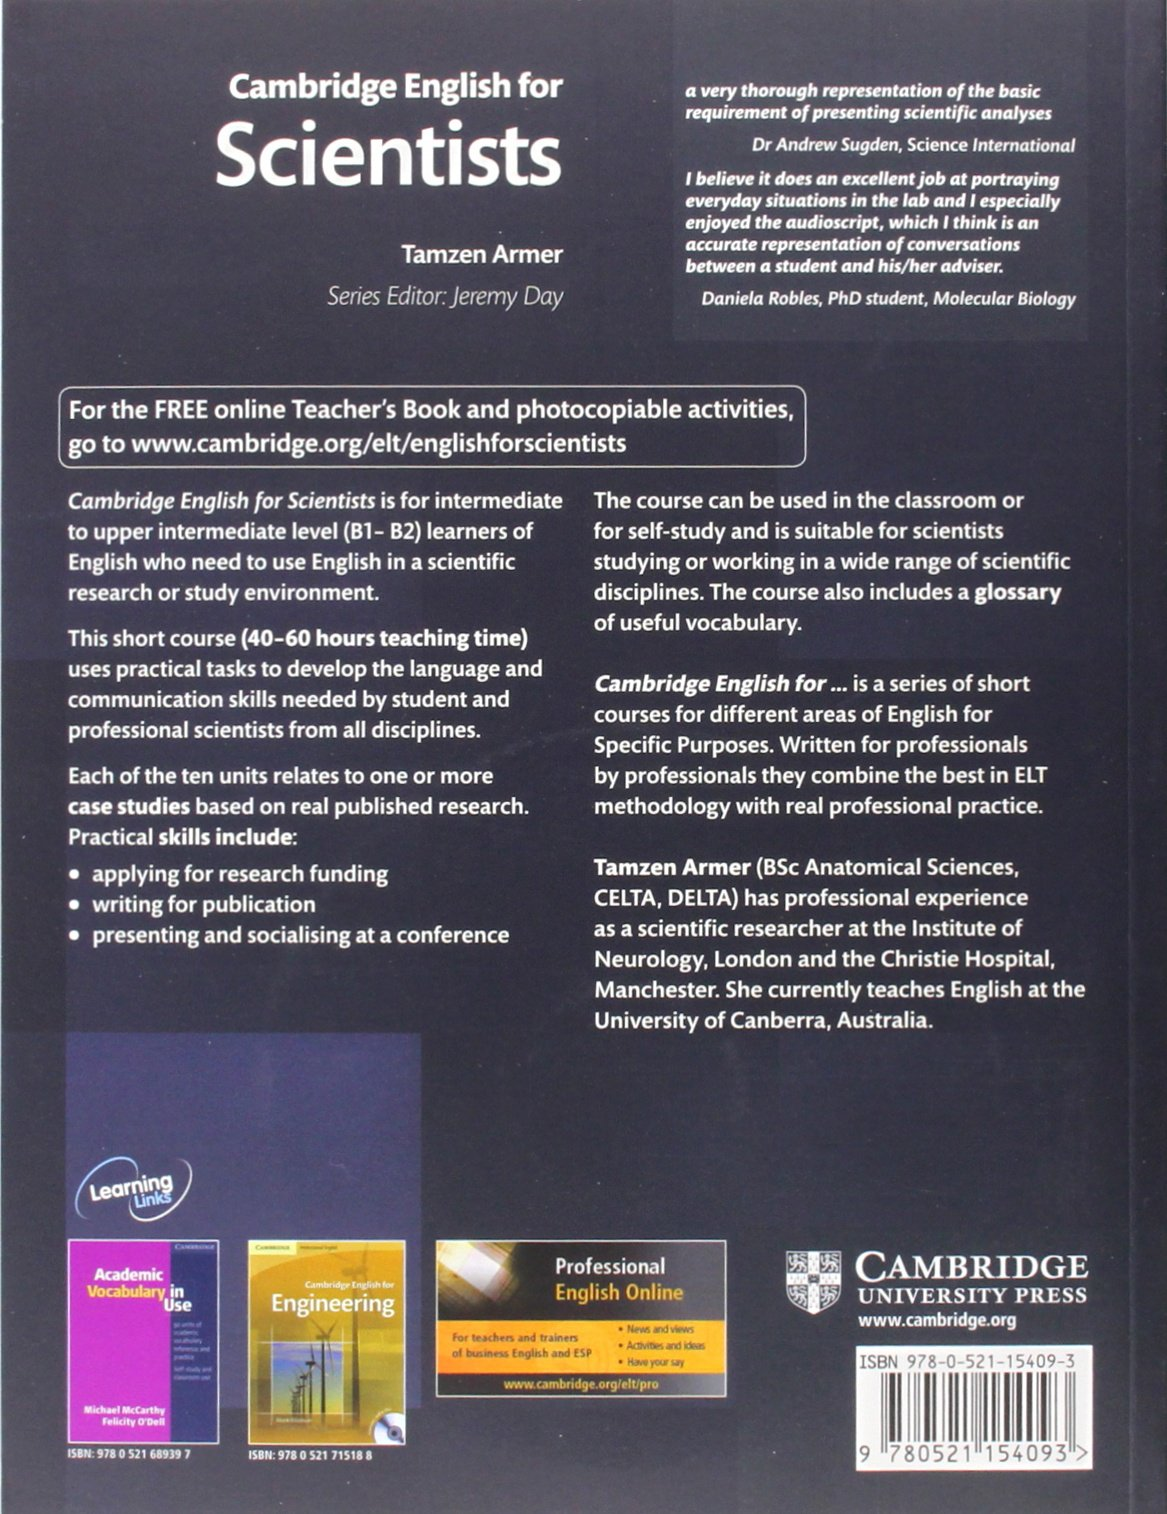 Cambridge English for Scientists Student's Book with Audio CDs (2) (Cambridge Professional English) by Cambridge University Press